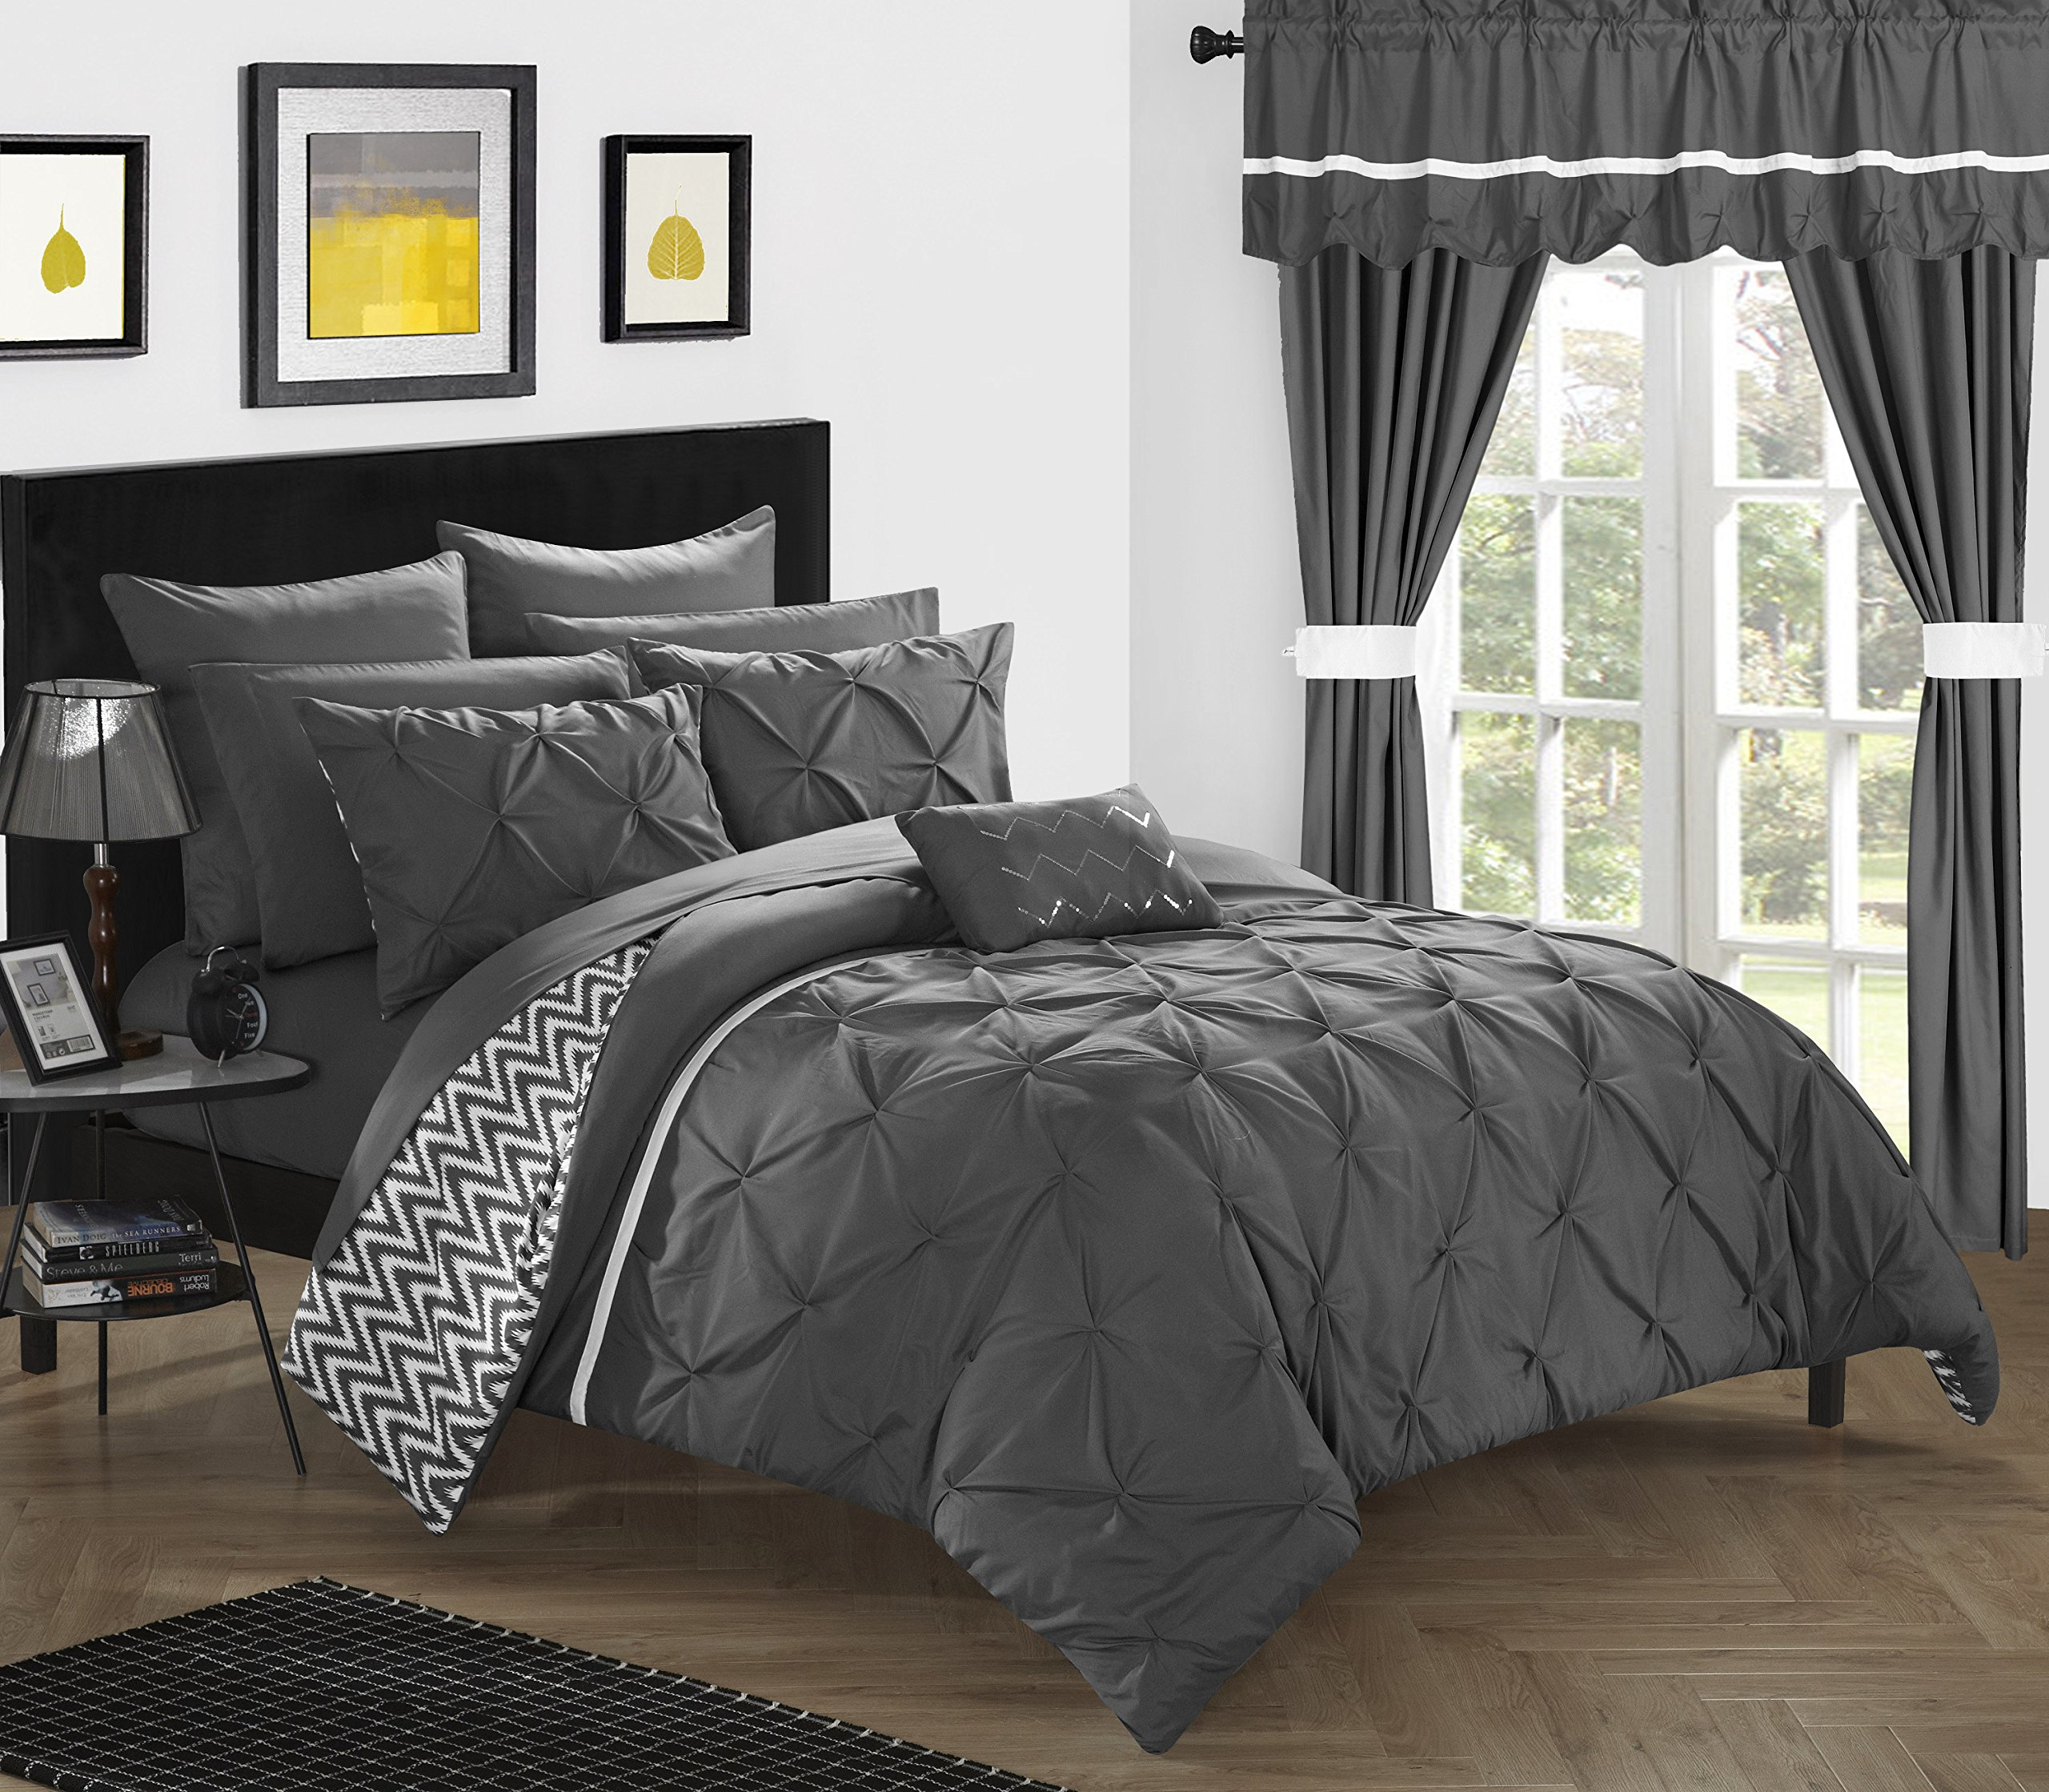 Chic Home CS0586-AN 20 Piece Jacksonville Complete Bed Room In A Bag Super Pinch Pleated Design Reversible Chevron Pattern Comforter Set, Sheet, Window Treatments And Decorative Pillows, Queen, Grey by Chic Home (Image #2)